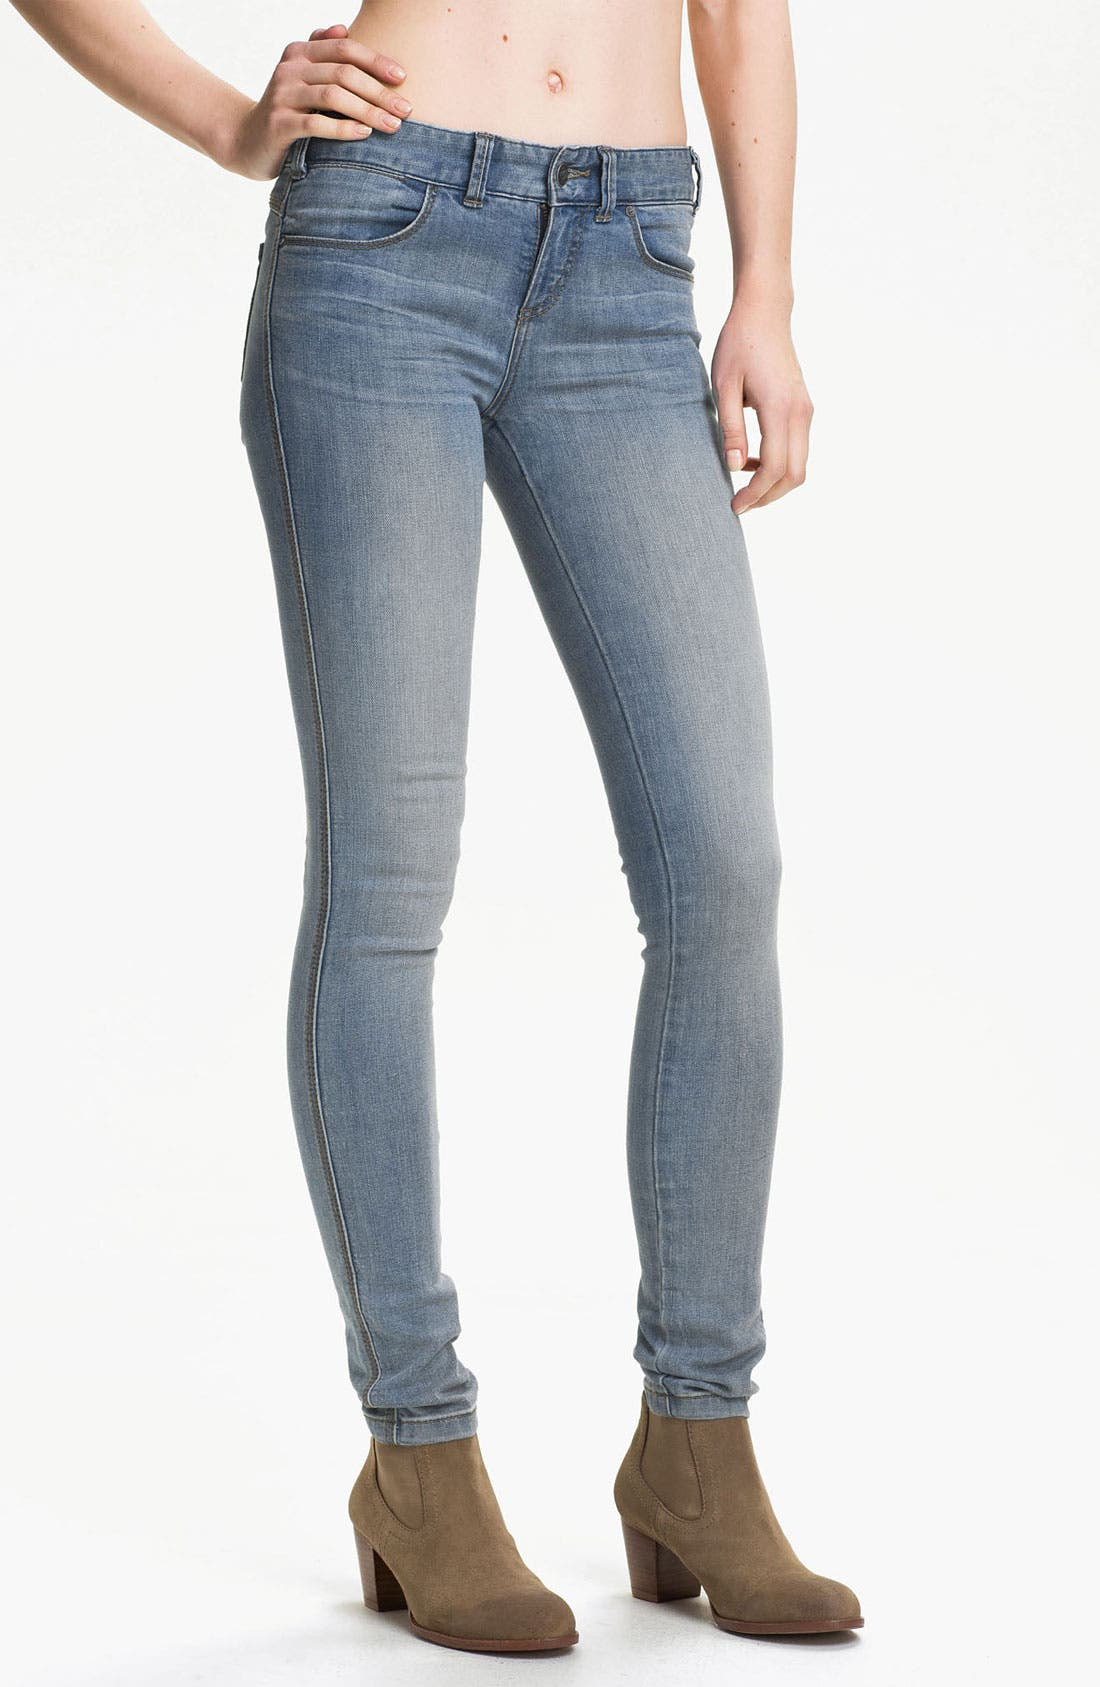 Alternate Image 1 Selected - Free People Stretch Denim Skinny Jeans (Sky Wash)